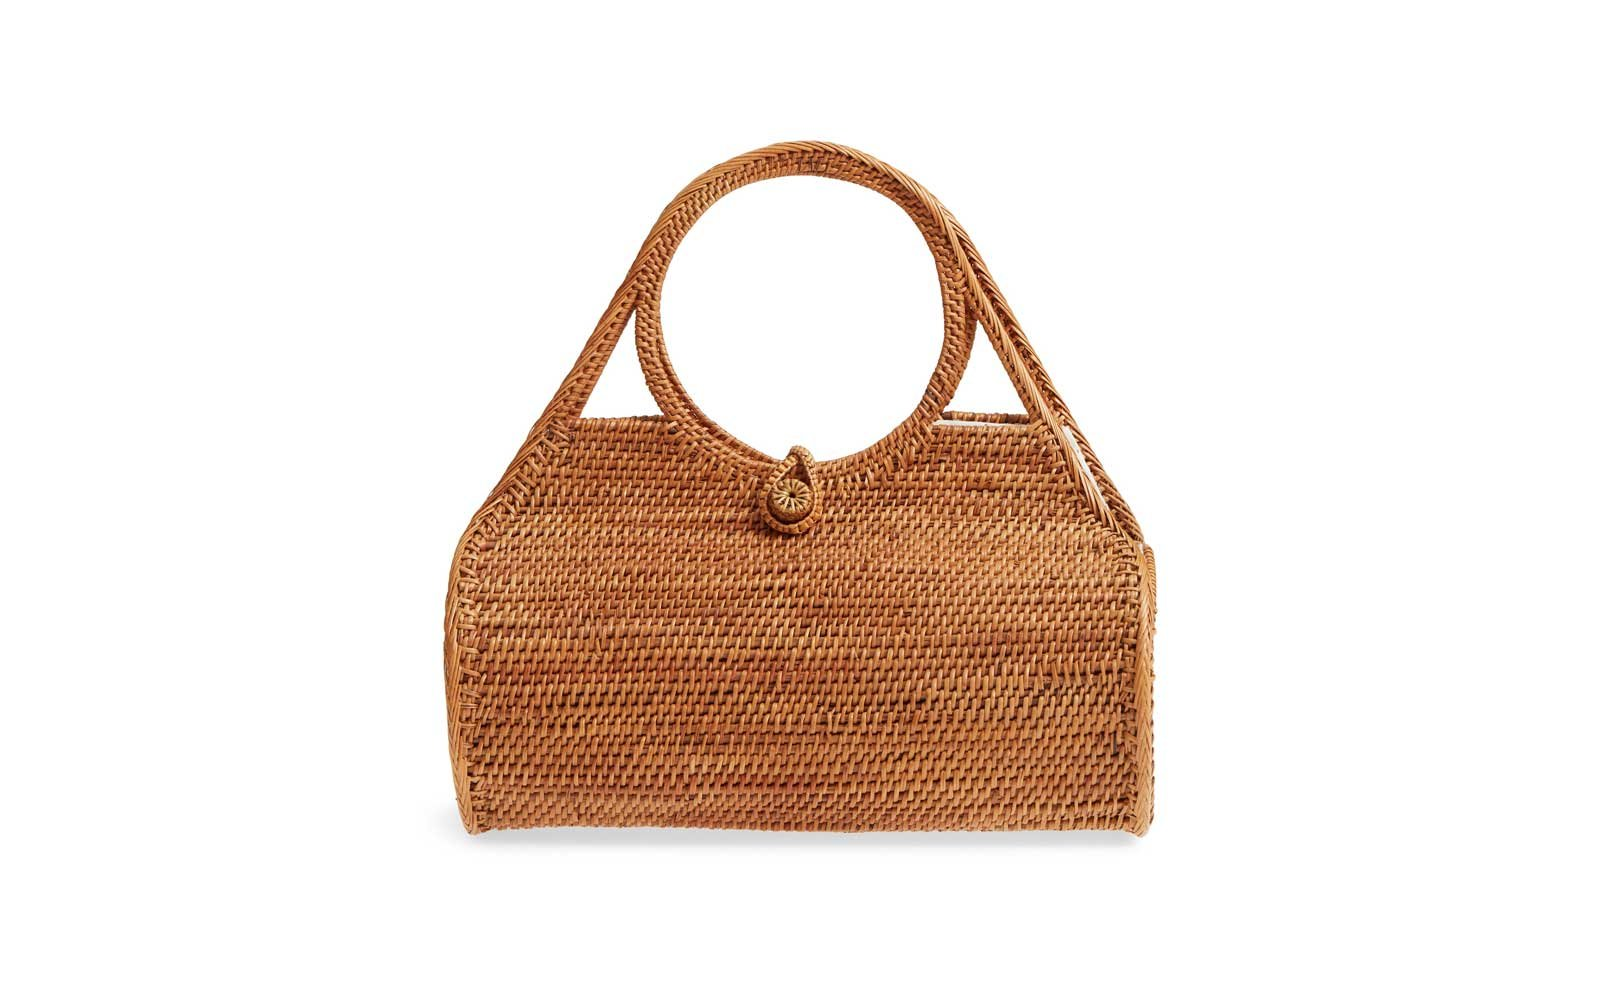 bcc5c83f9c Street Level Woven Rattan Handbag